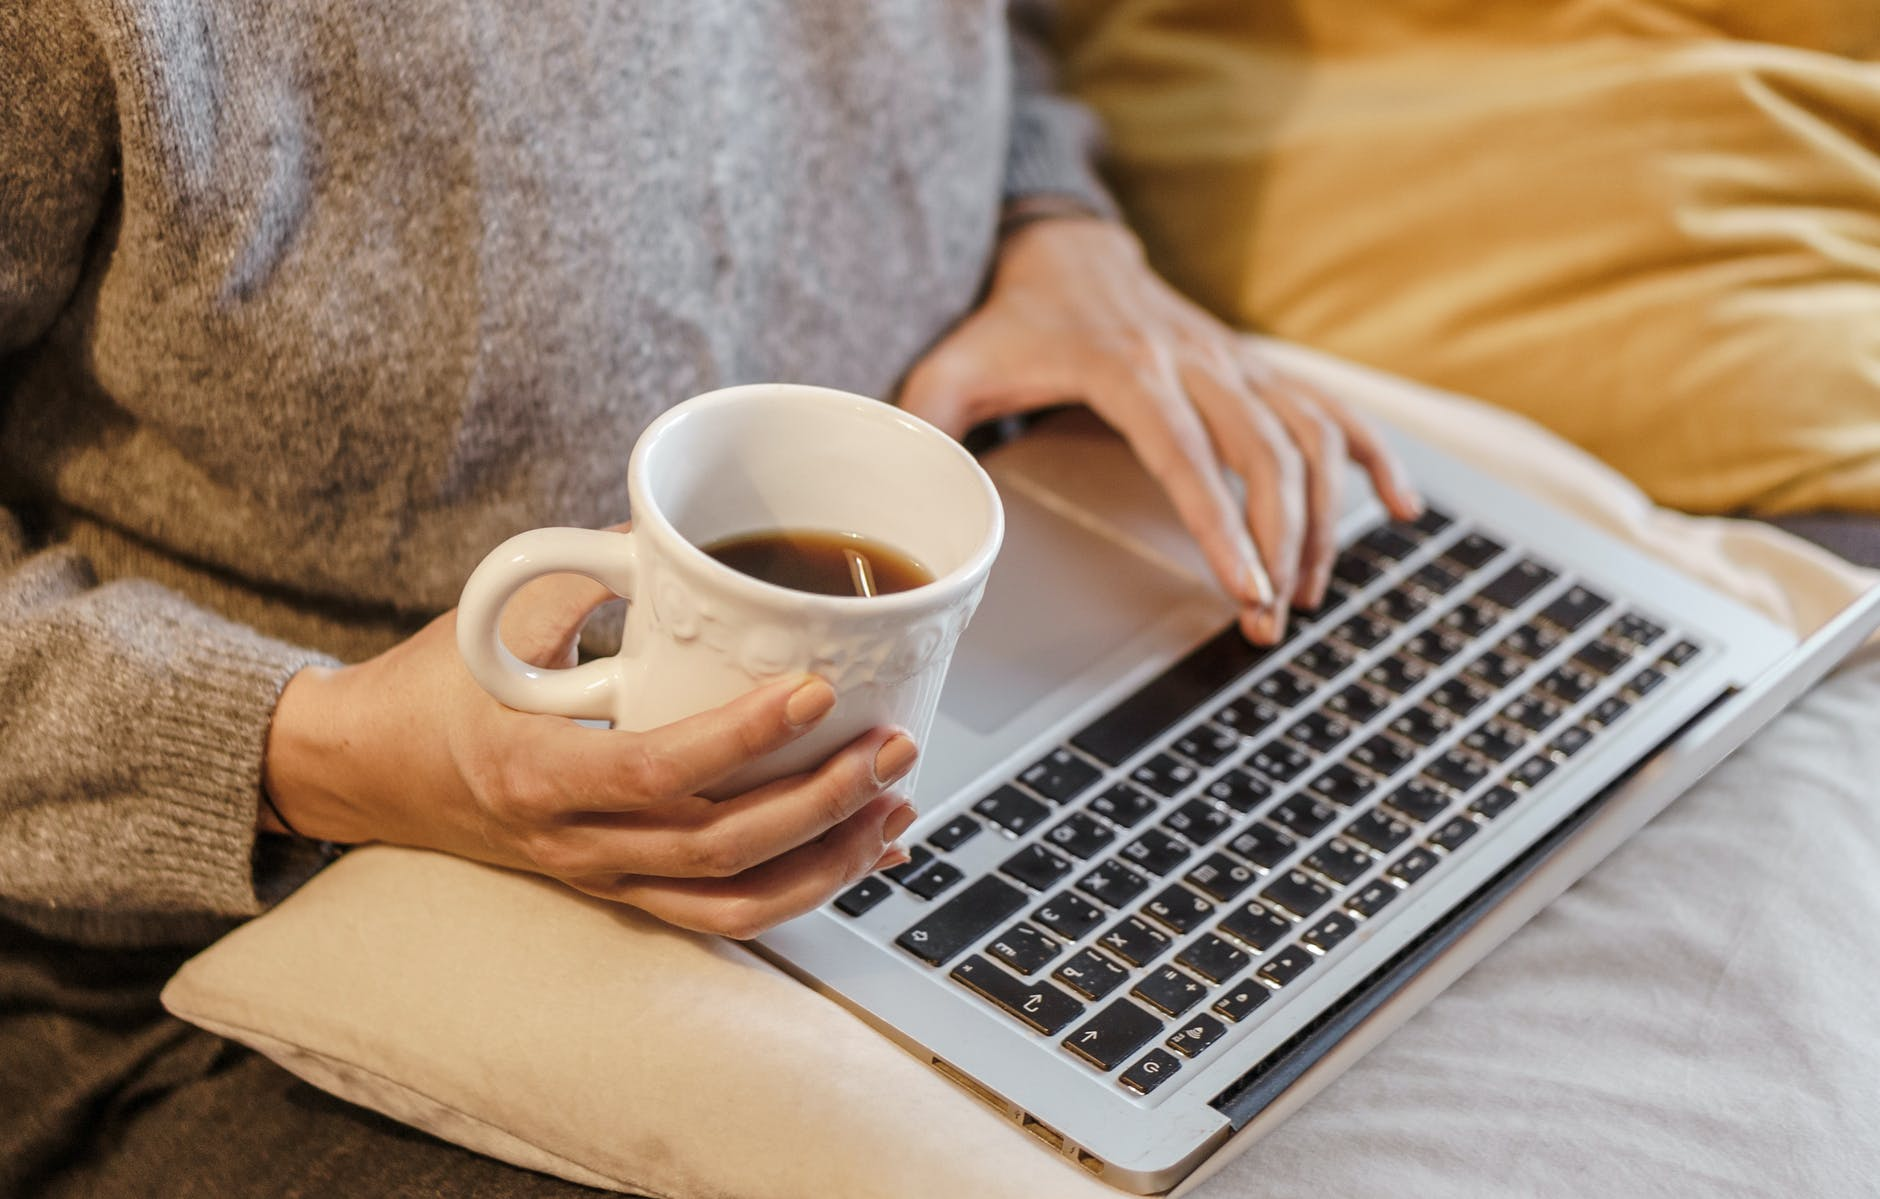 crop freelancer with mug of coffee typing on laptop